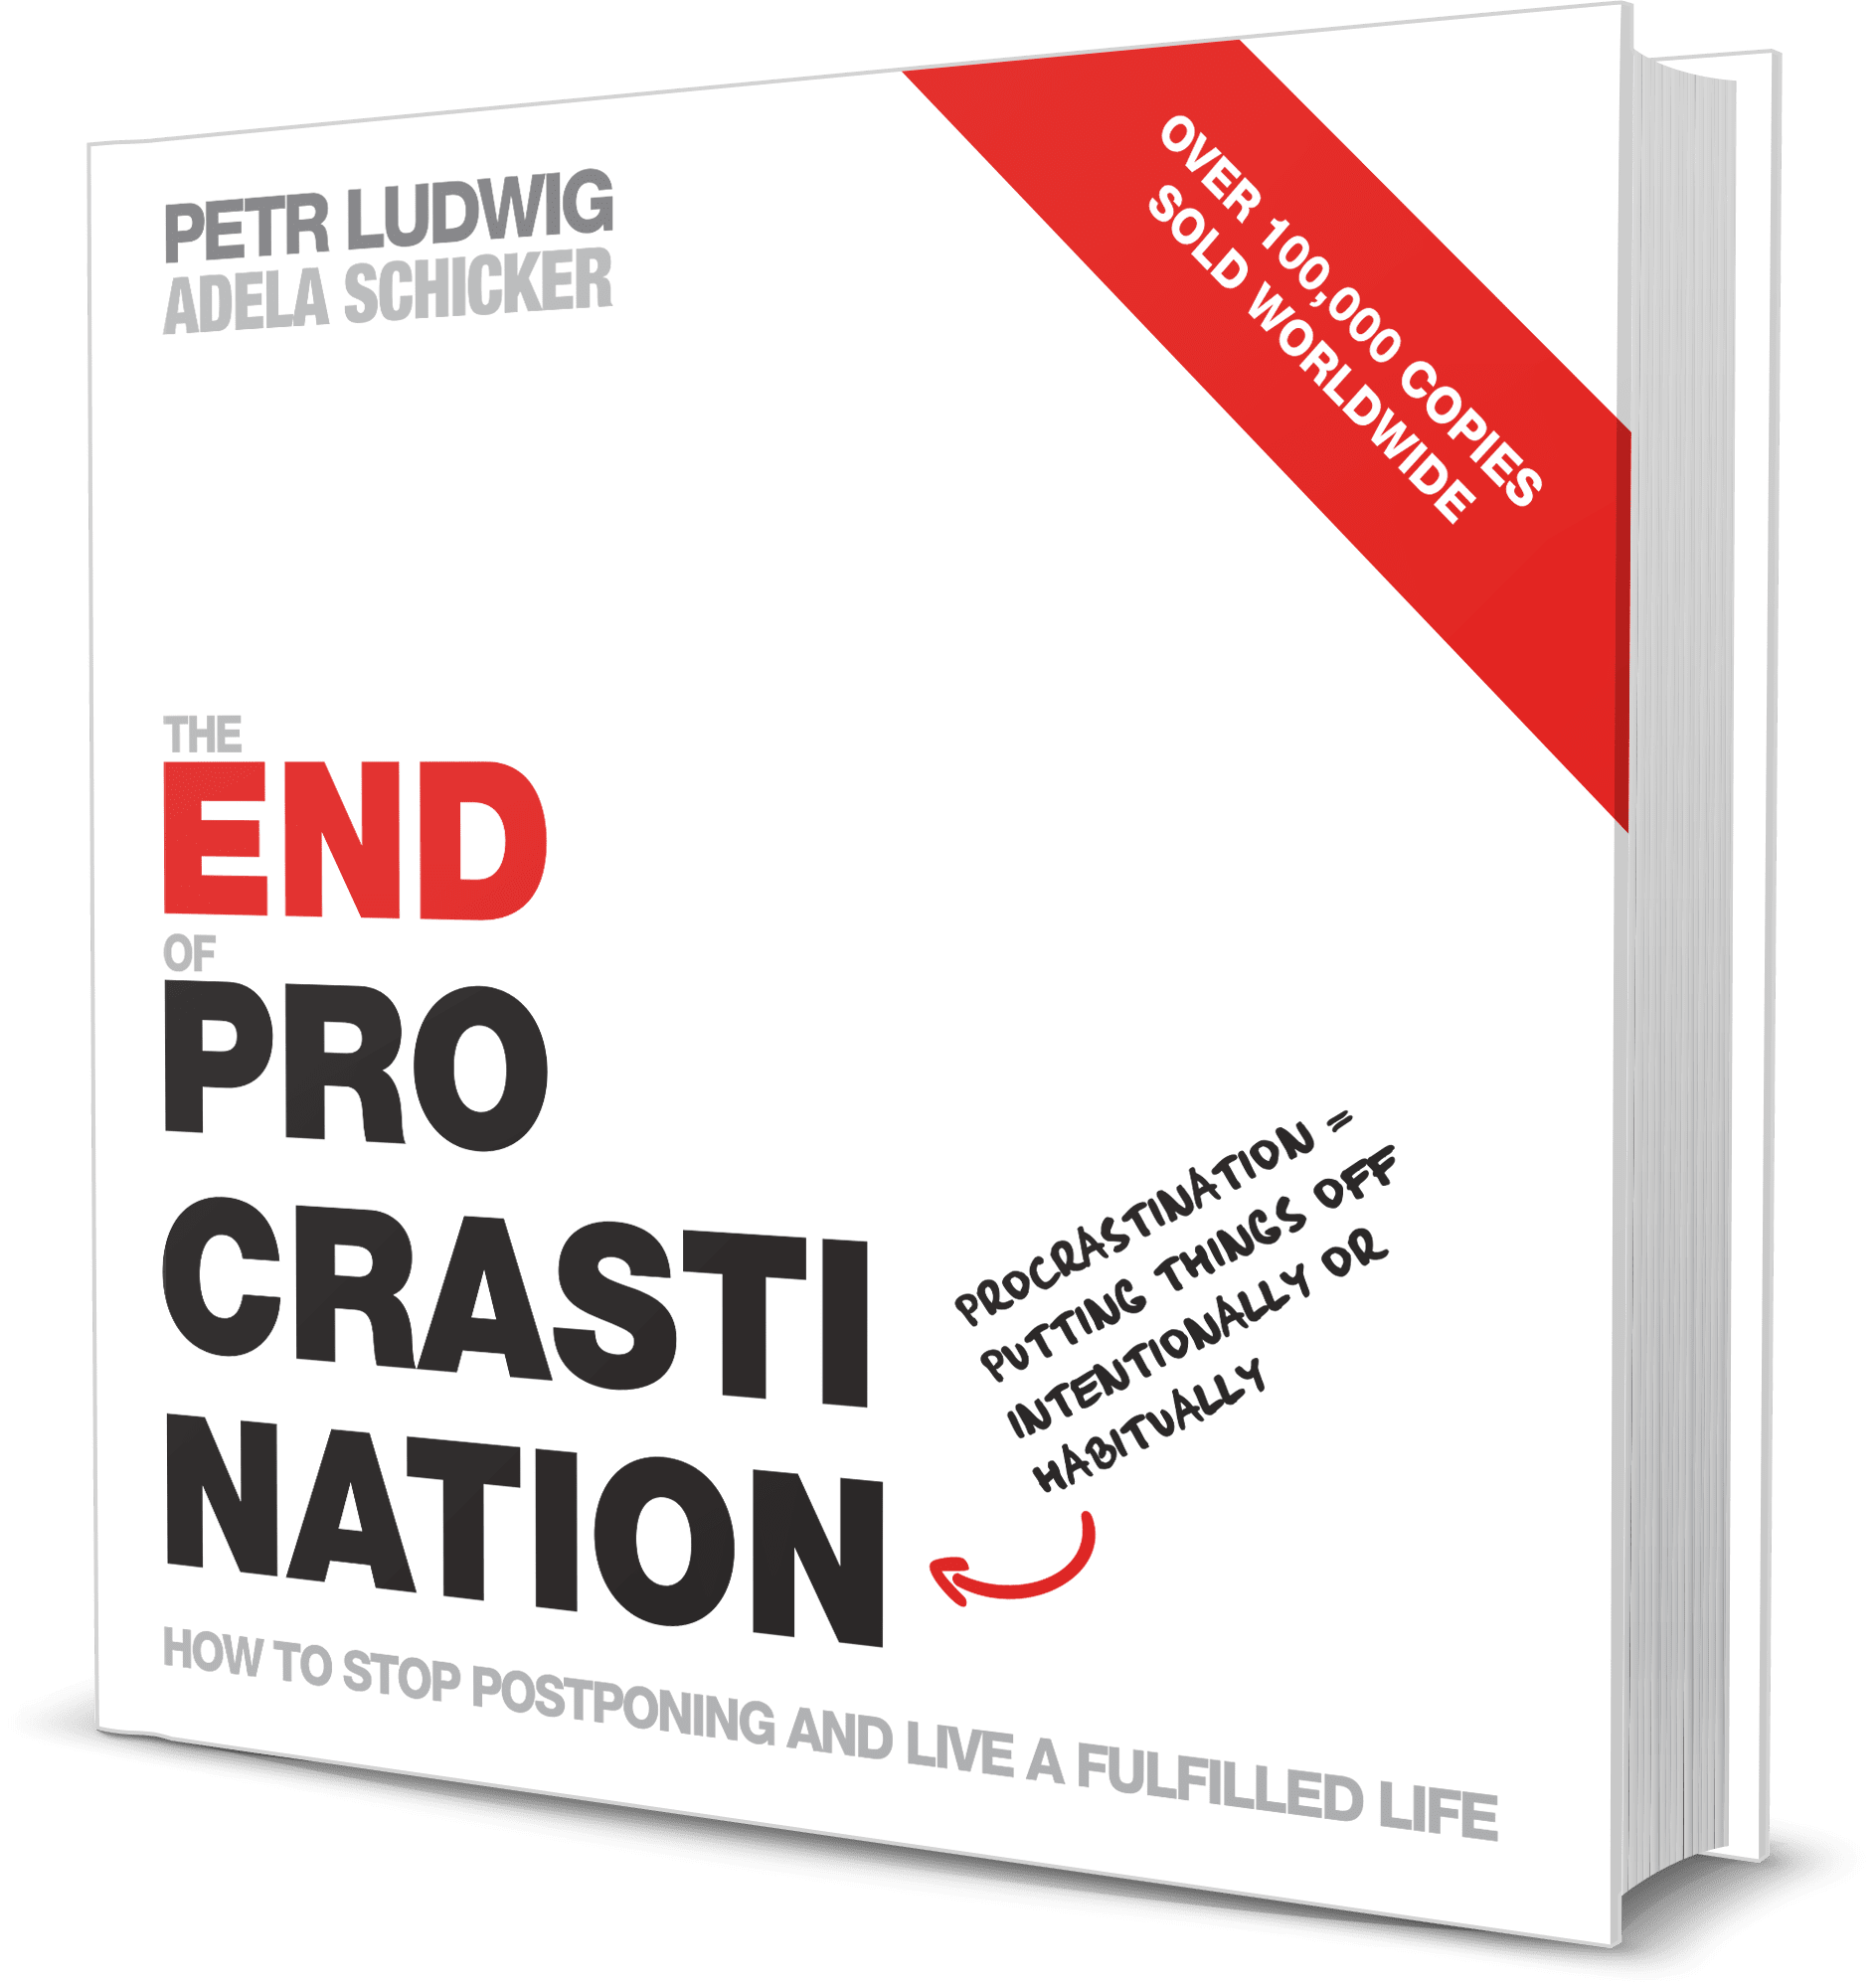 BOOK: The End of Procrastination - How to Stop Postponing